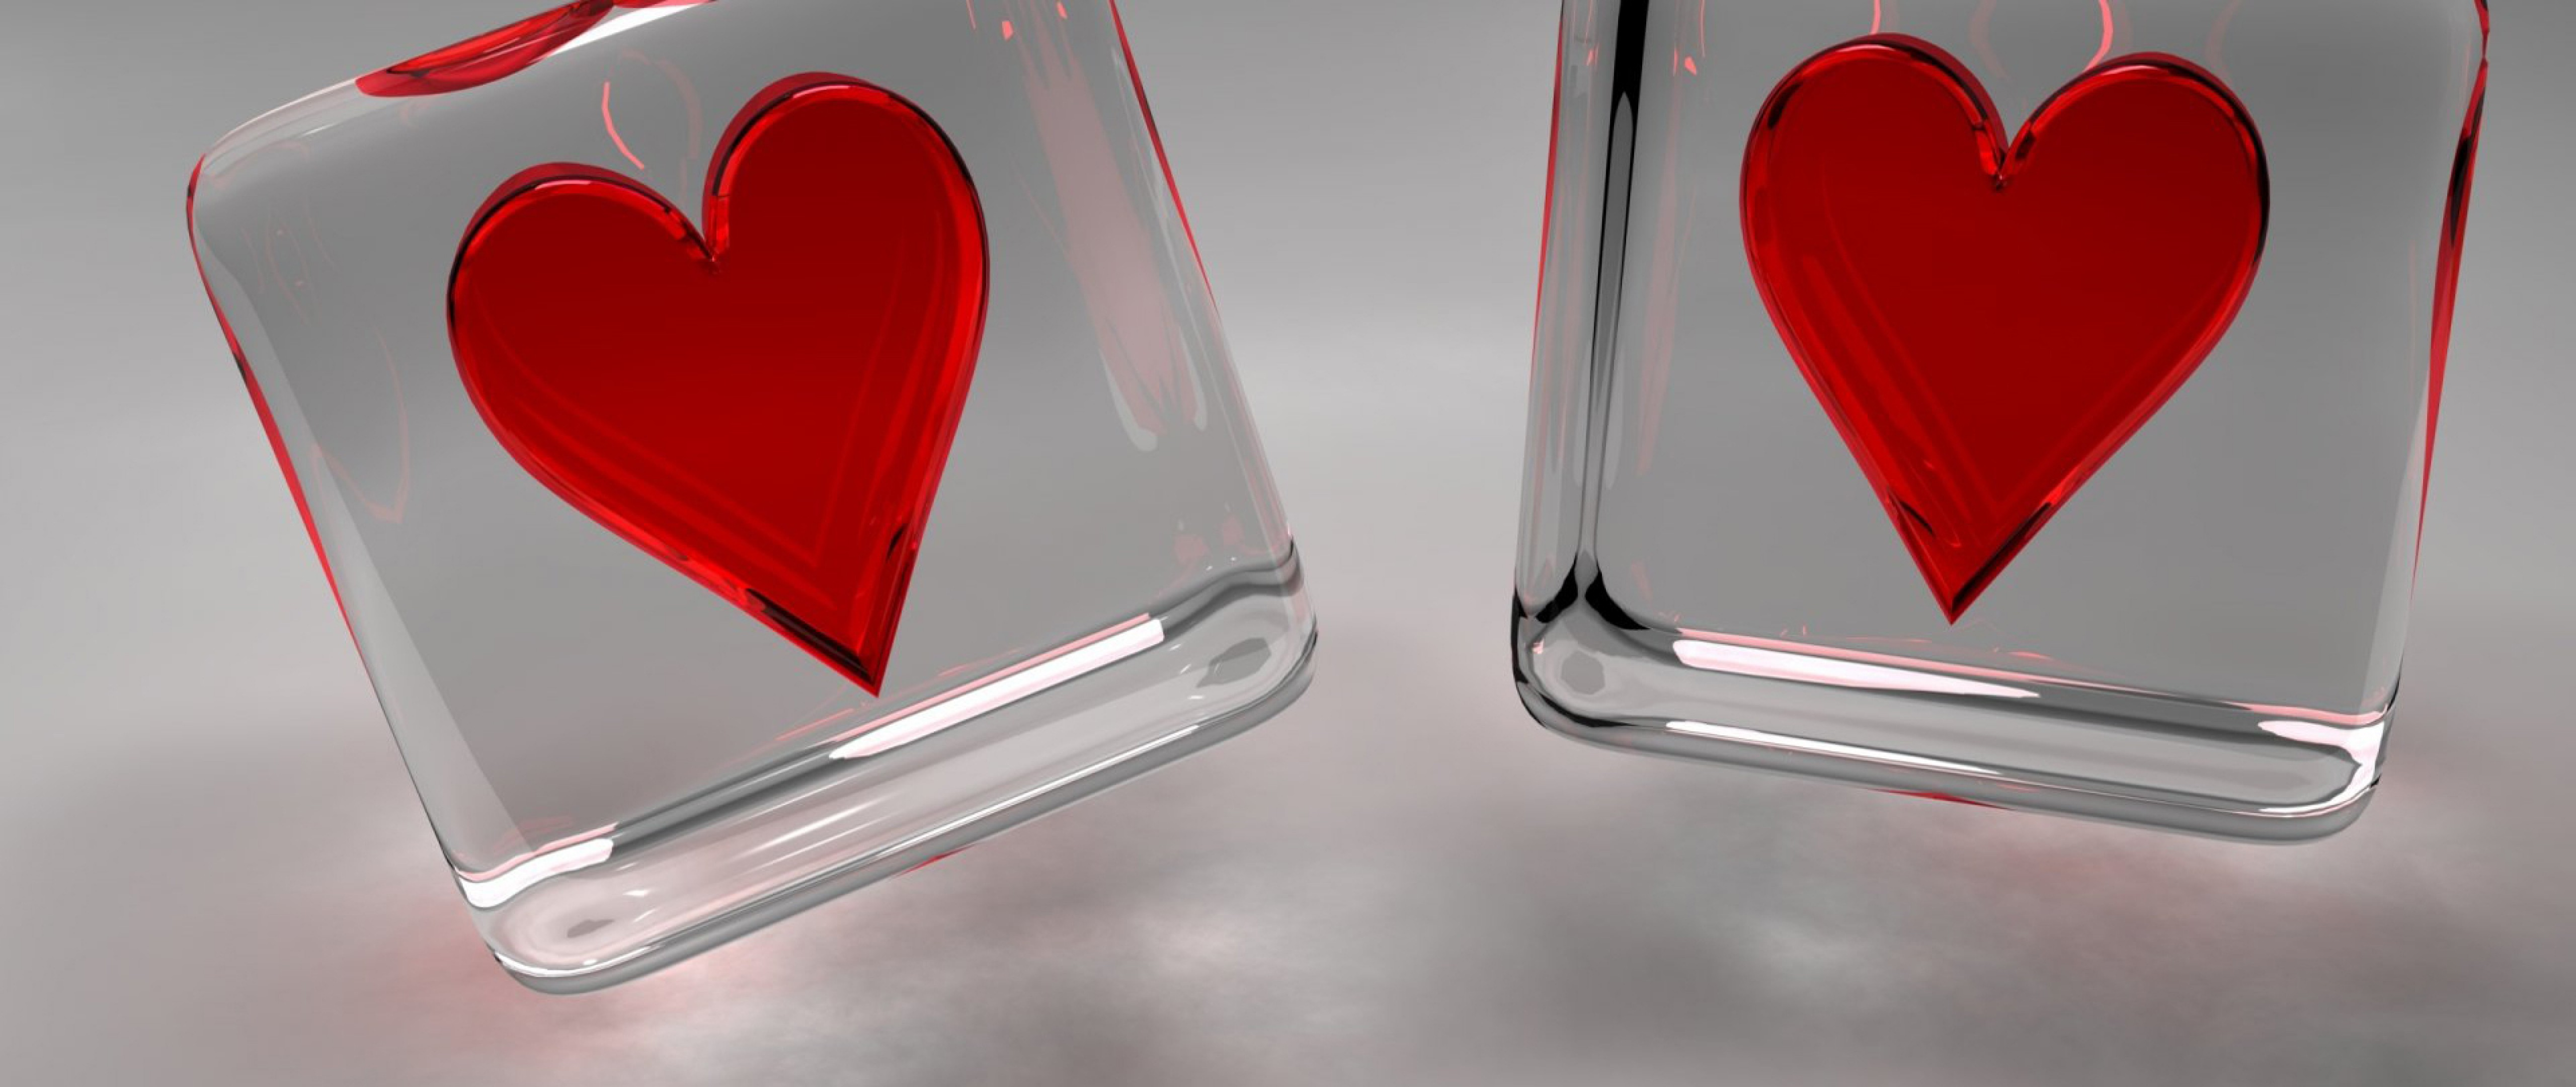 Download Free Love Heart Cubes Live Hd Wallpaper For Desktop And